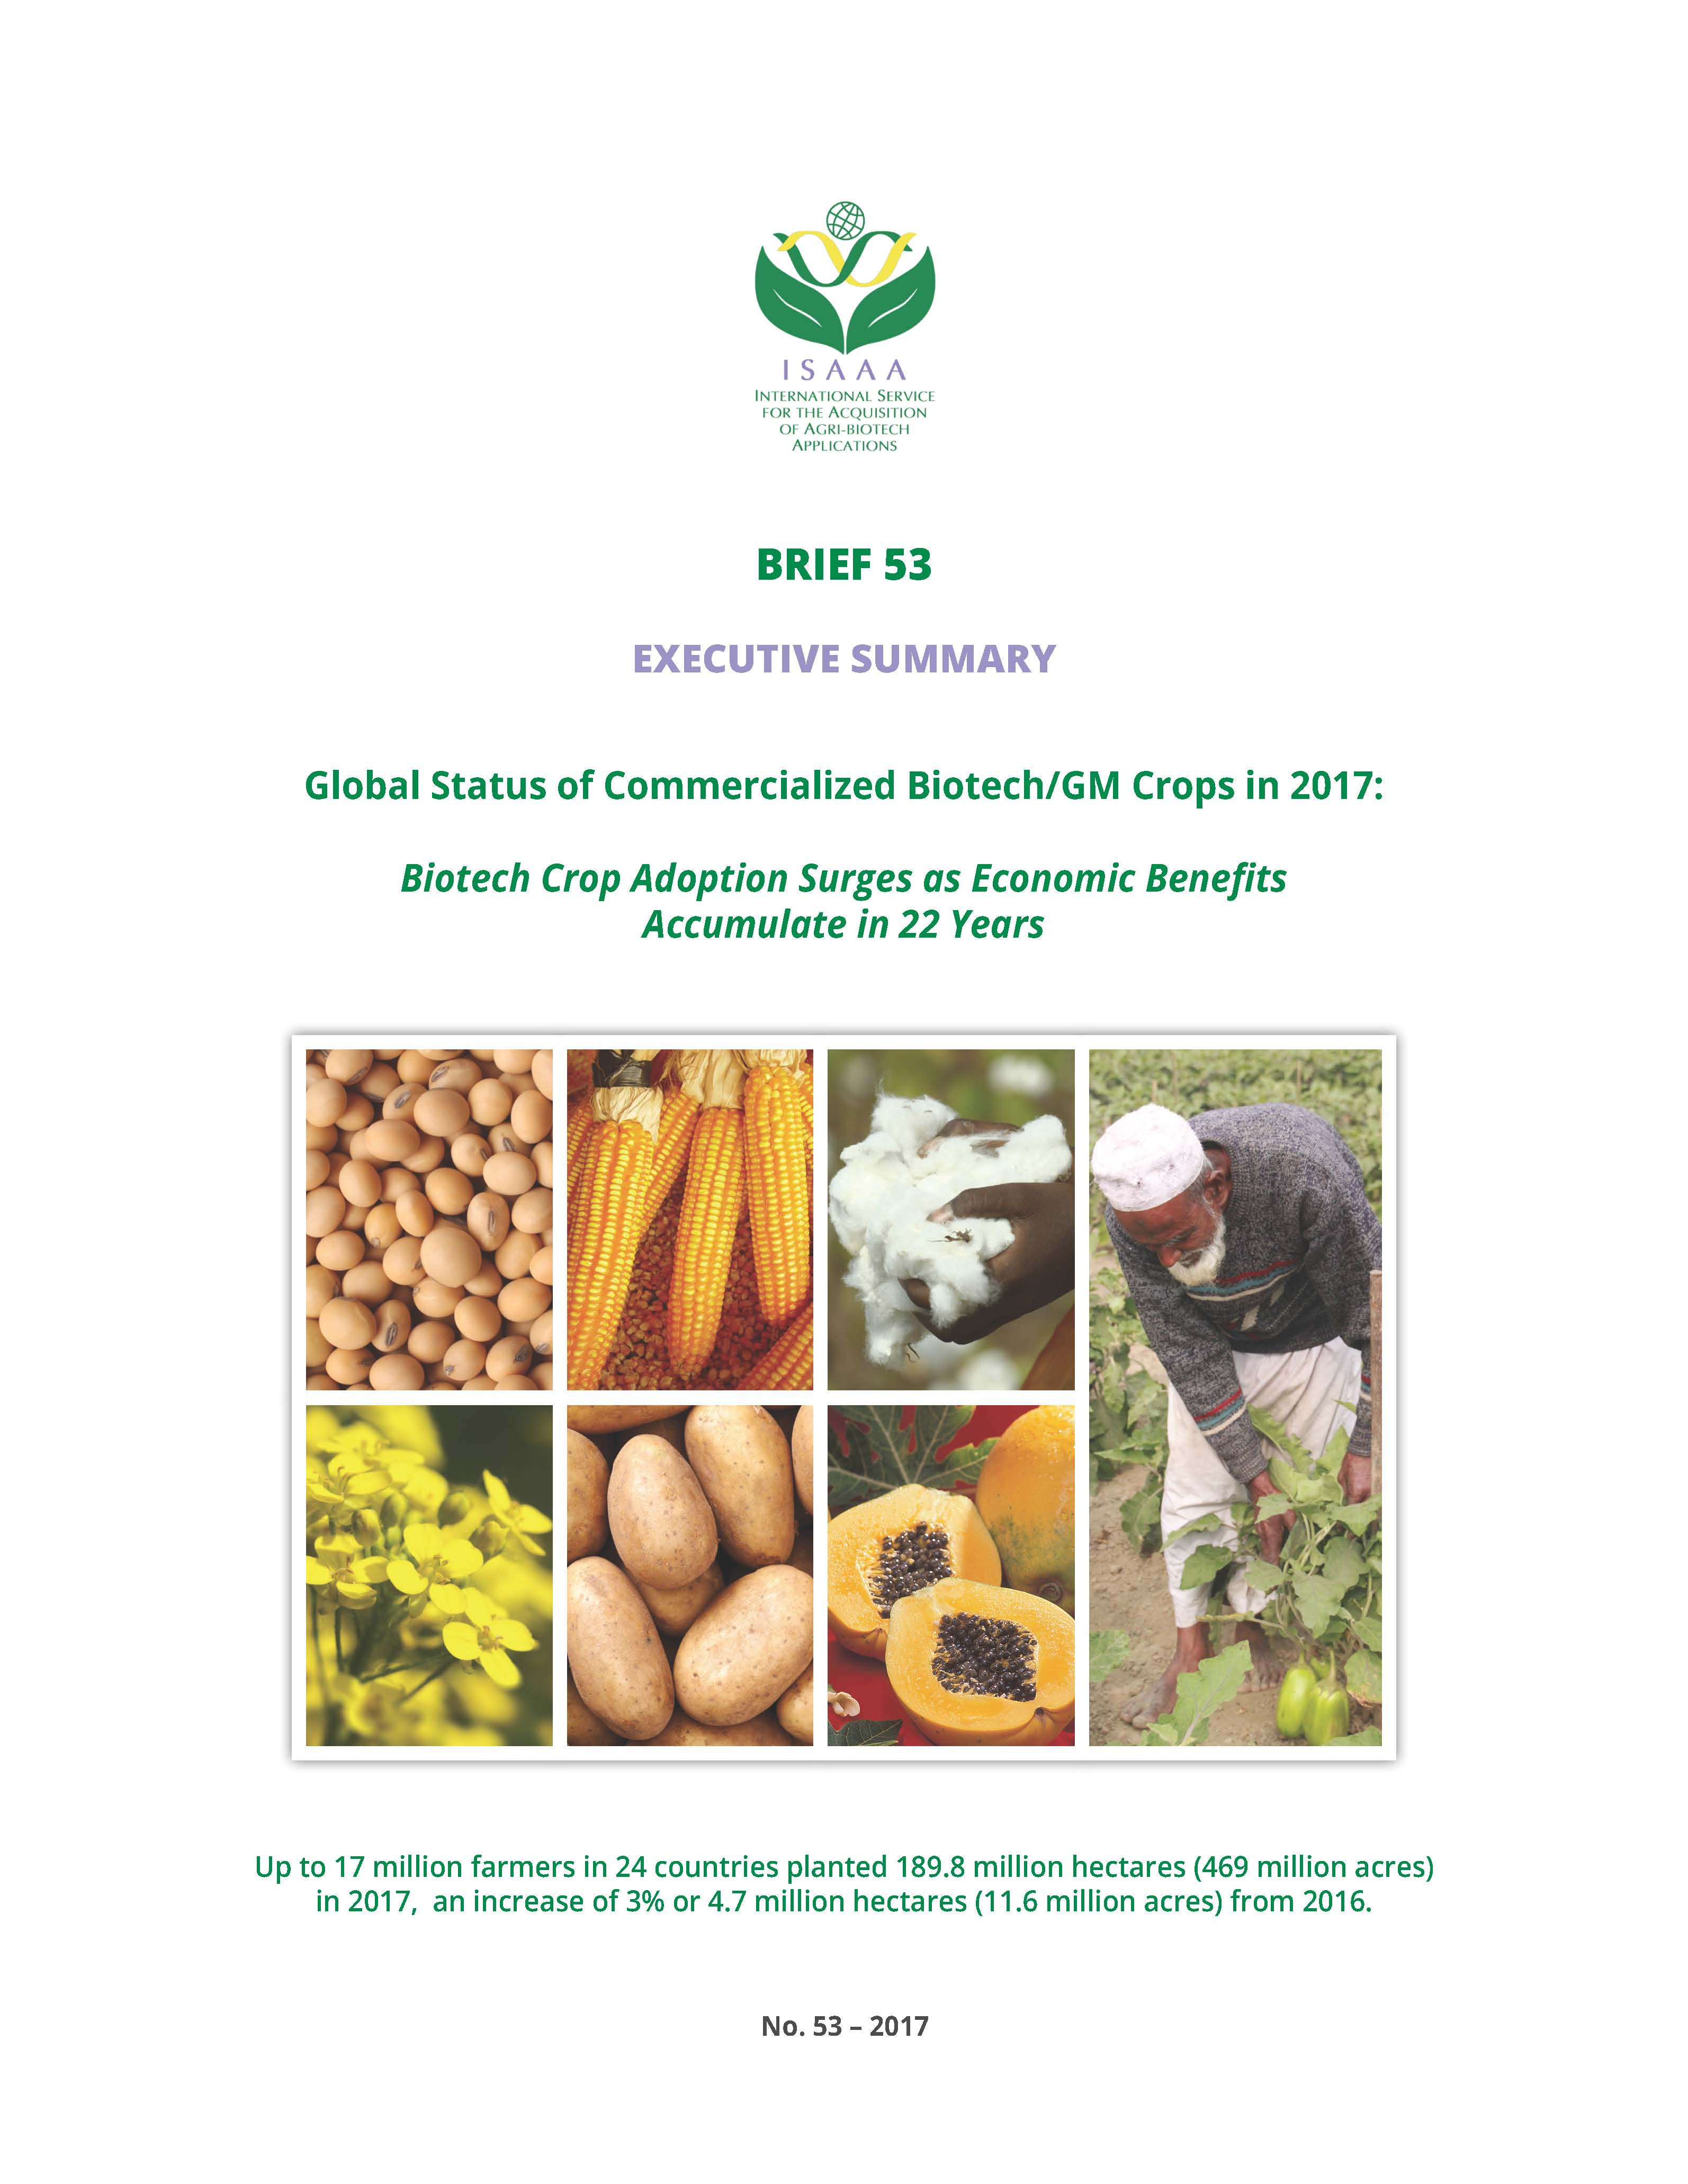 EXECUTIVE SUMMARY: GLOBAL STATUS OF COMMERCIALIZED BIOTECH/GM CROPS IN 2017